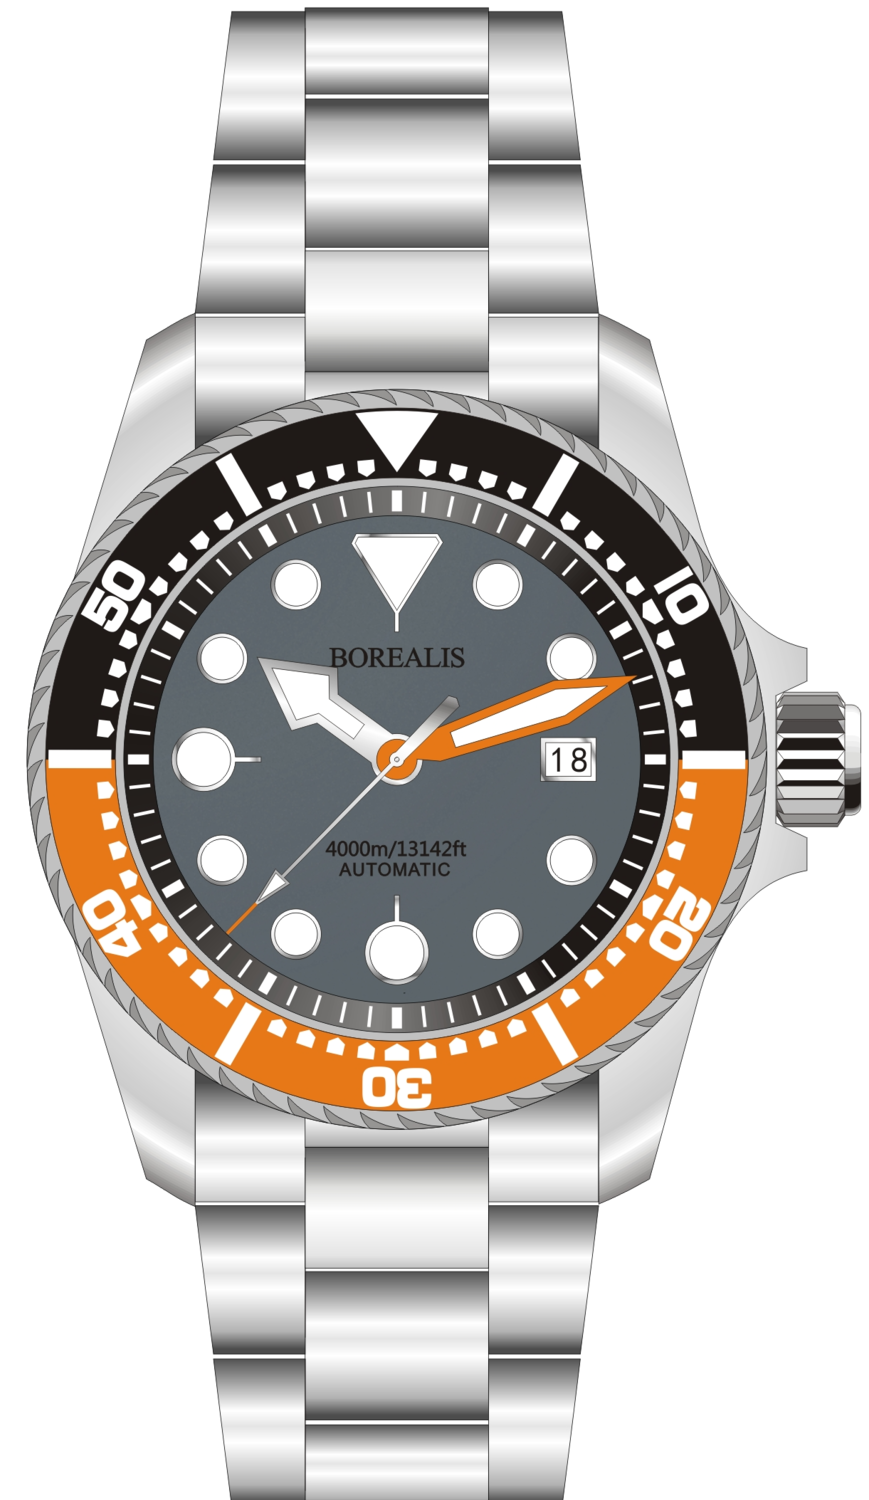 Borealis Seafarer II Stainless Steel Gray Orange BGW9 Sapphire Turbine Style Grip Bezel 4000m Miyota 9015 Automatic Diver Watch